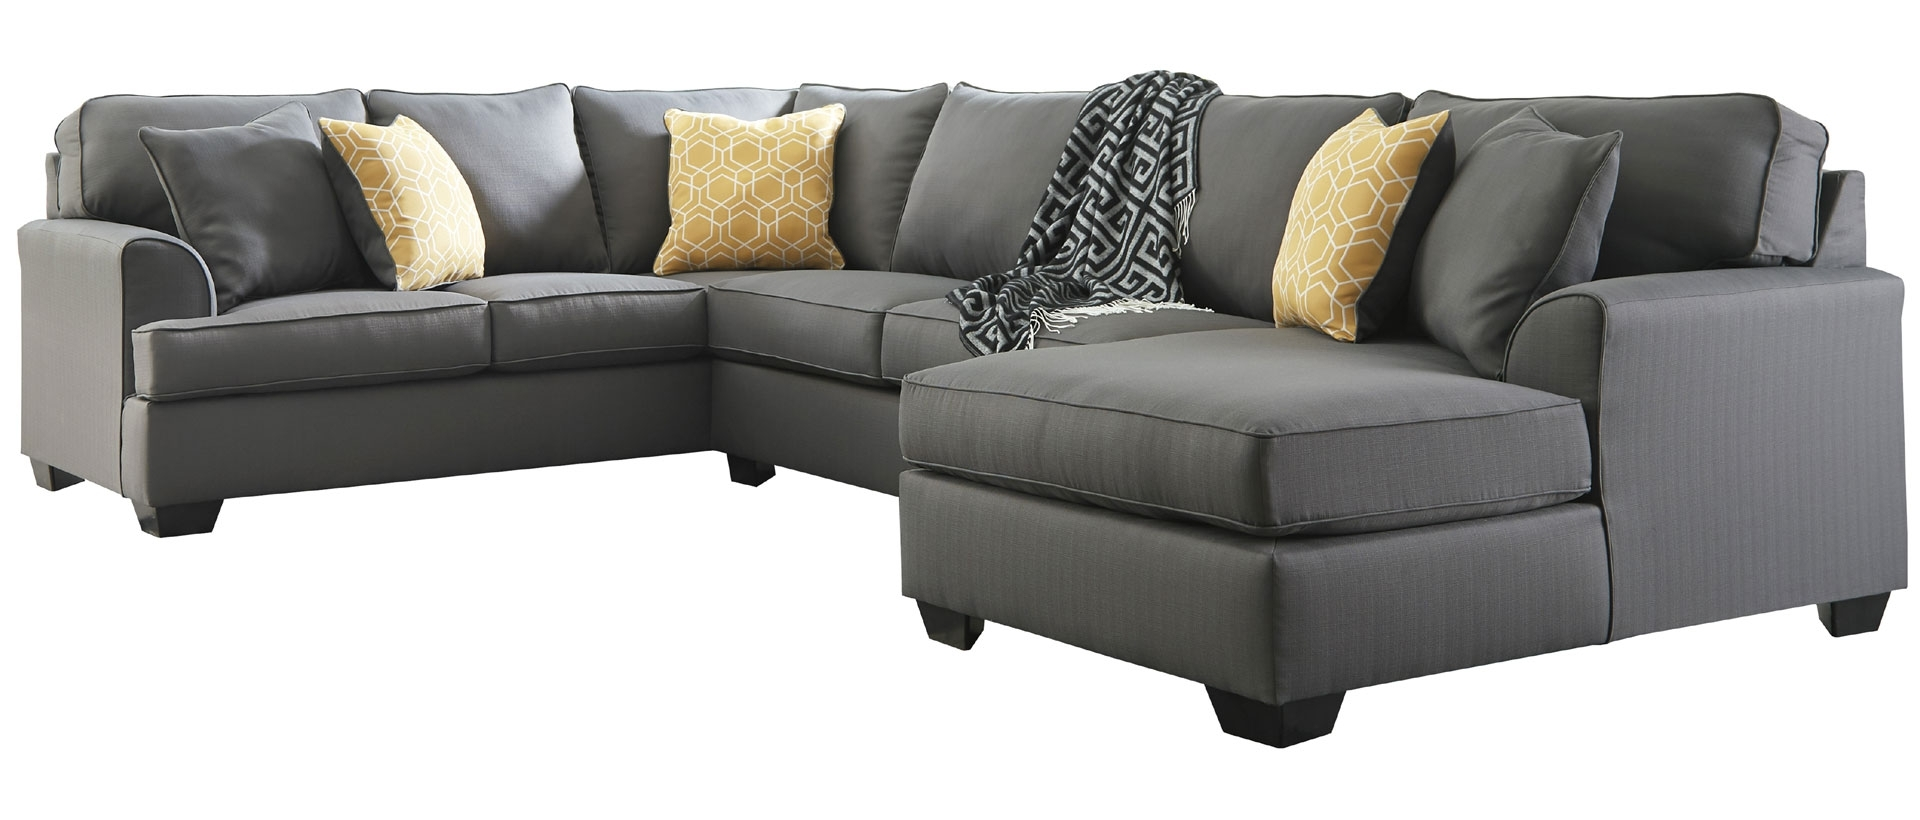 Leon Furniture Store In Phoenix And Glendale, Buy Quality Furniture In Hattiesburg Ms Sectional Sofas (View 7 of 10)